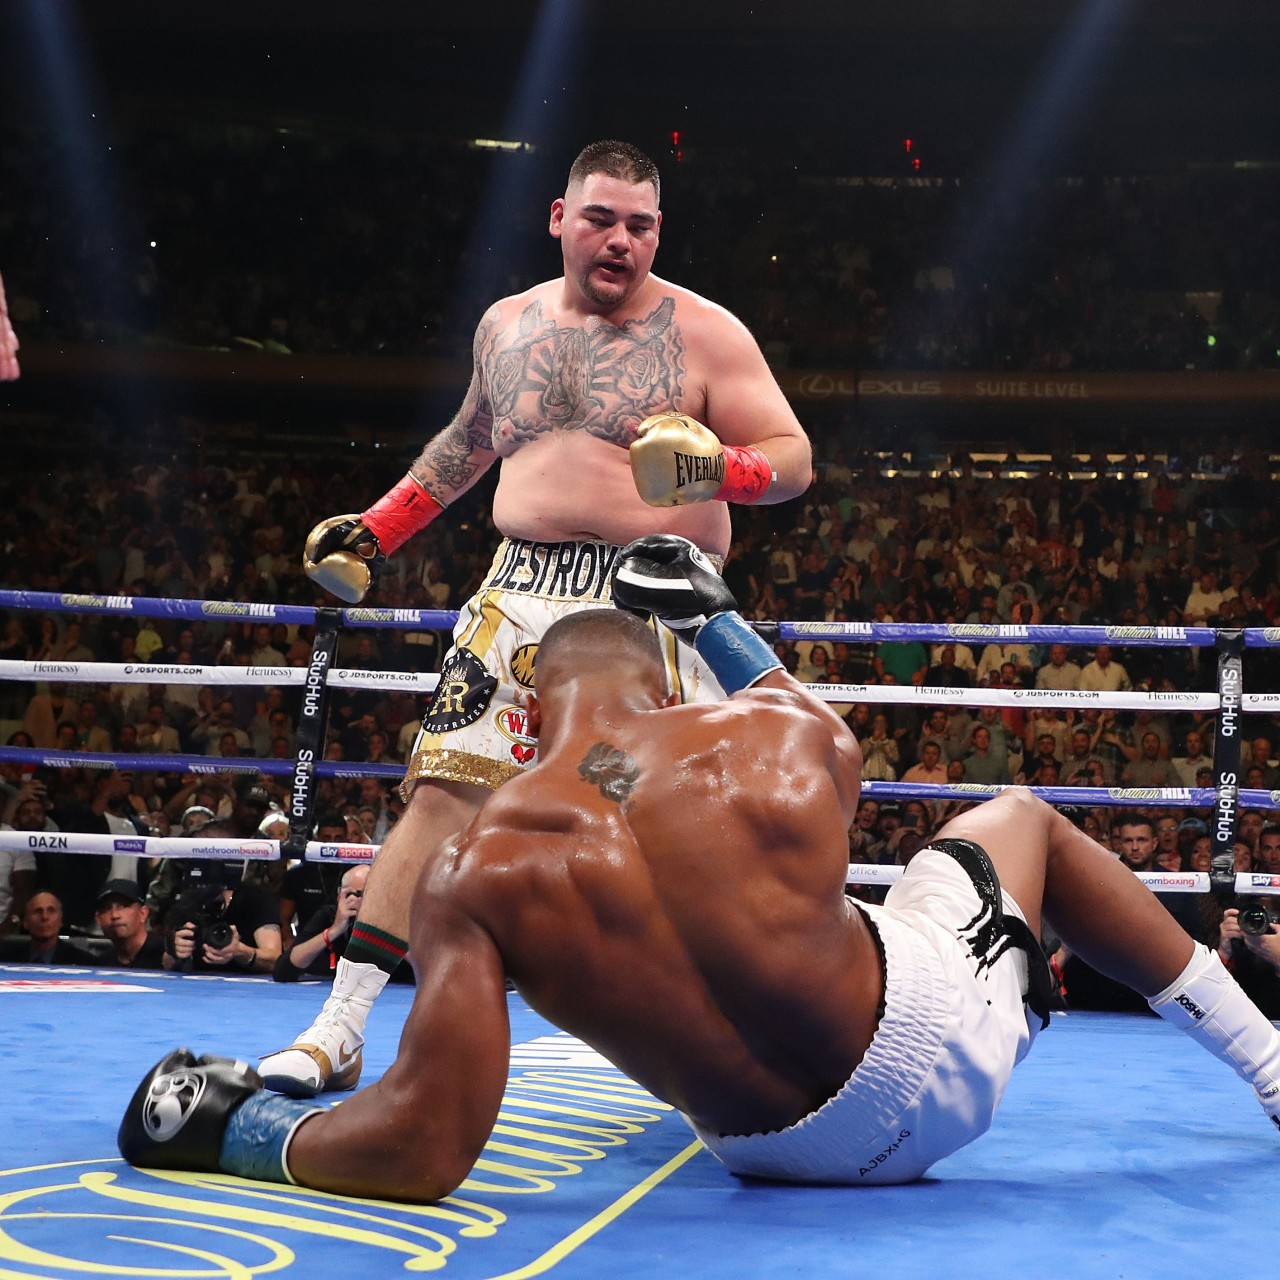 Andy Ruiz destroys Anthony Joshua to win heavyweight titles at